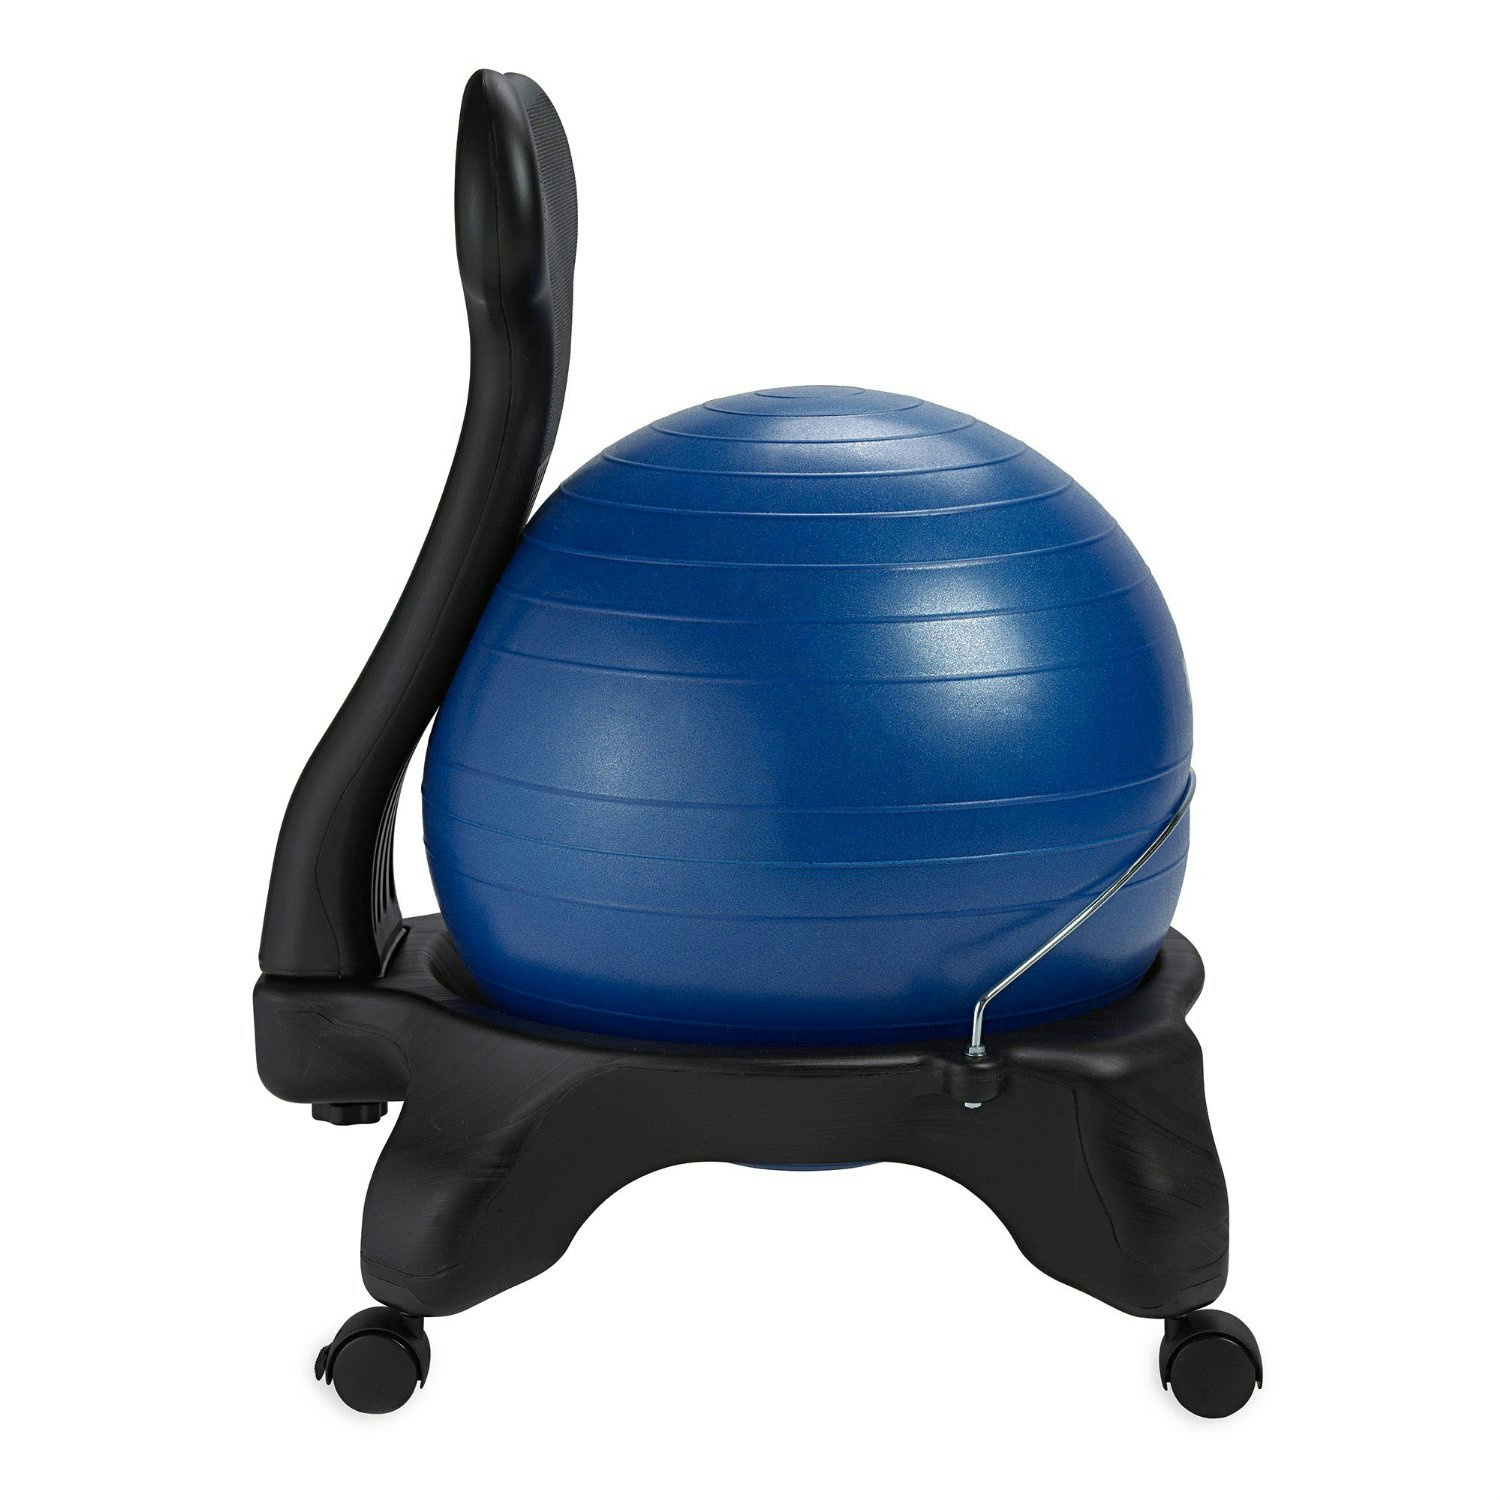 Pilates Ball Chair Gaiam Balance Ball Chairs Ergonomic Back Support Fitness